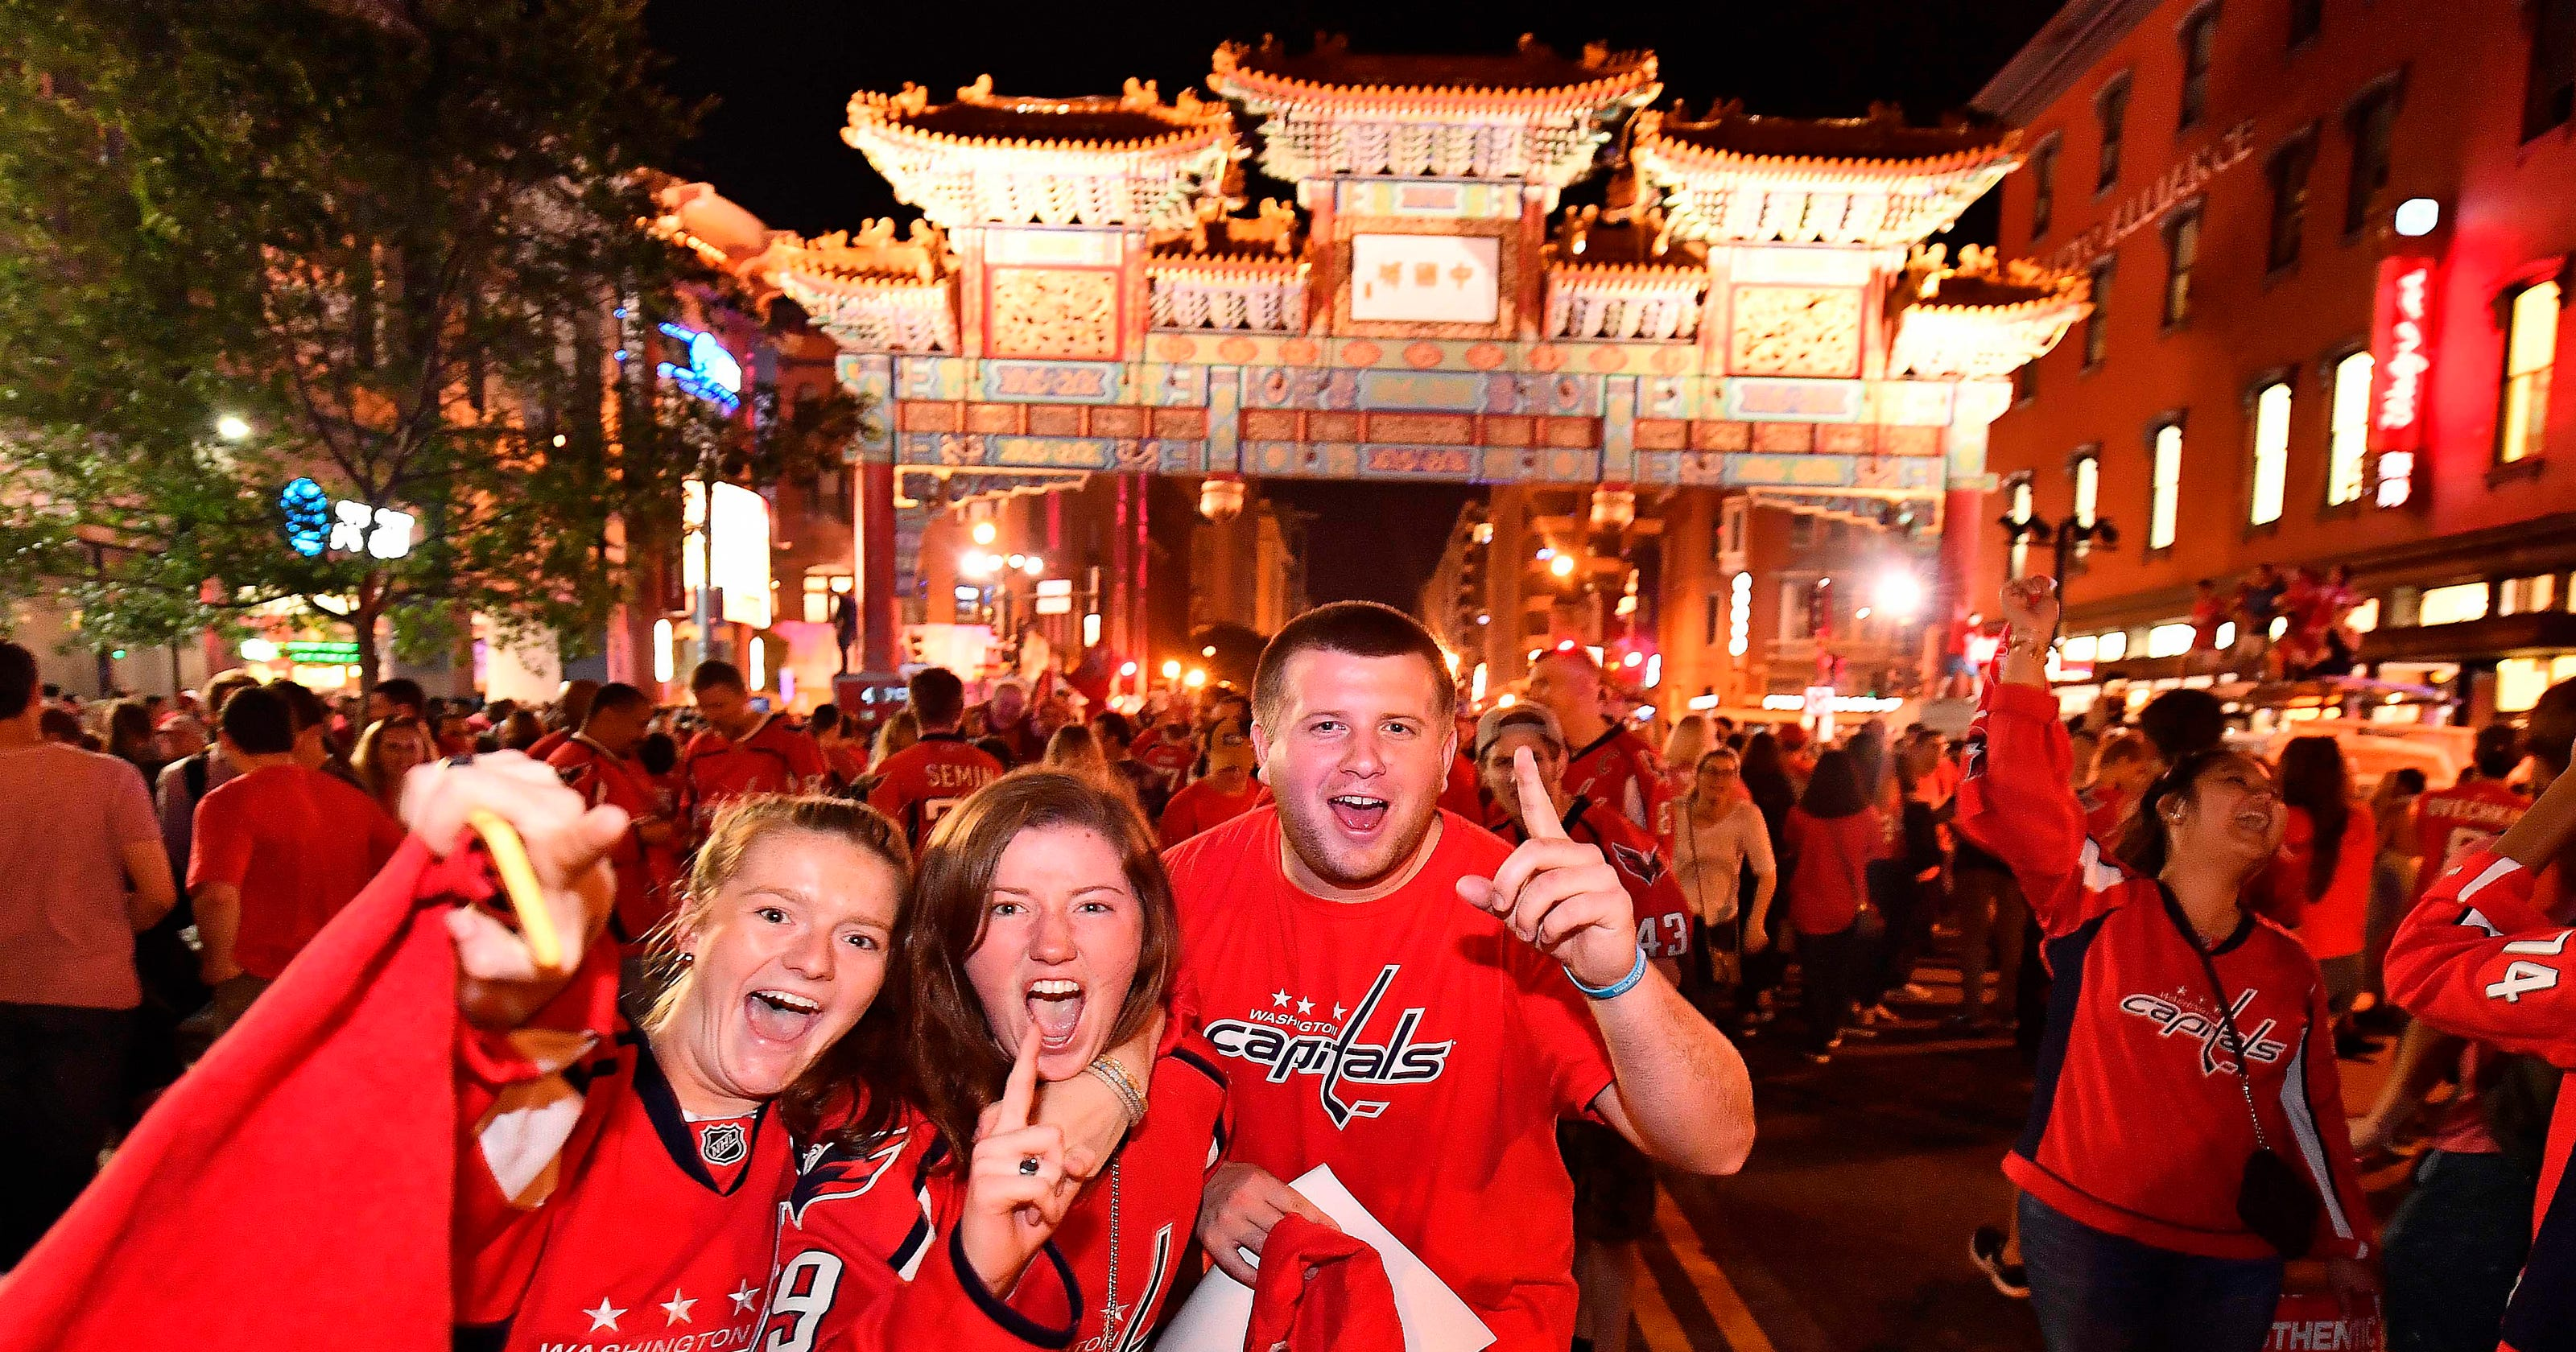 d061ac646d1 Washington Capitals  Stanley Cup parade set for Tuesday